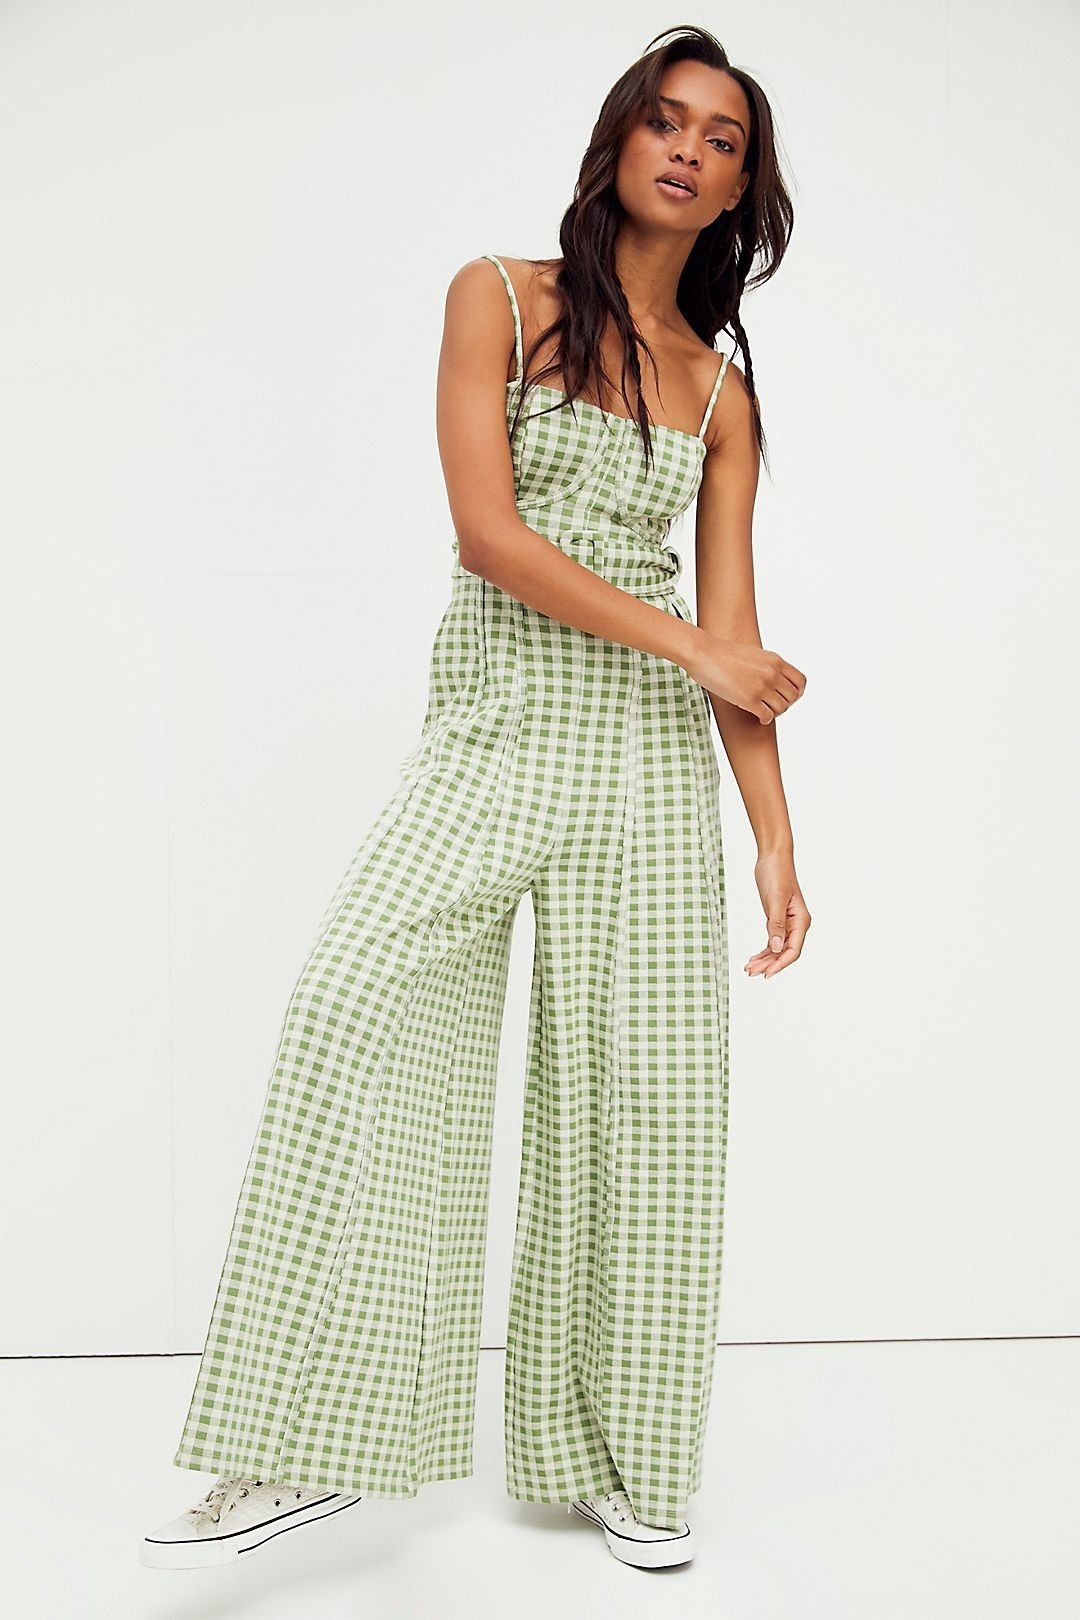 model wearing the floor length green and white checkered jumpsuit